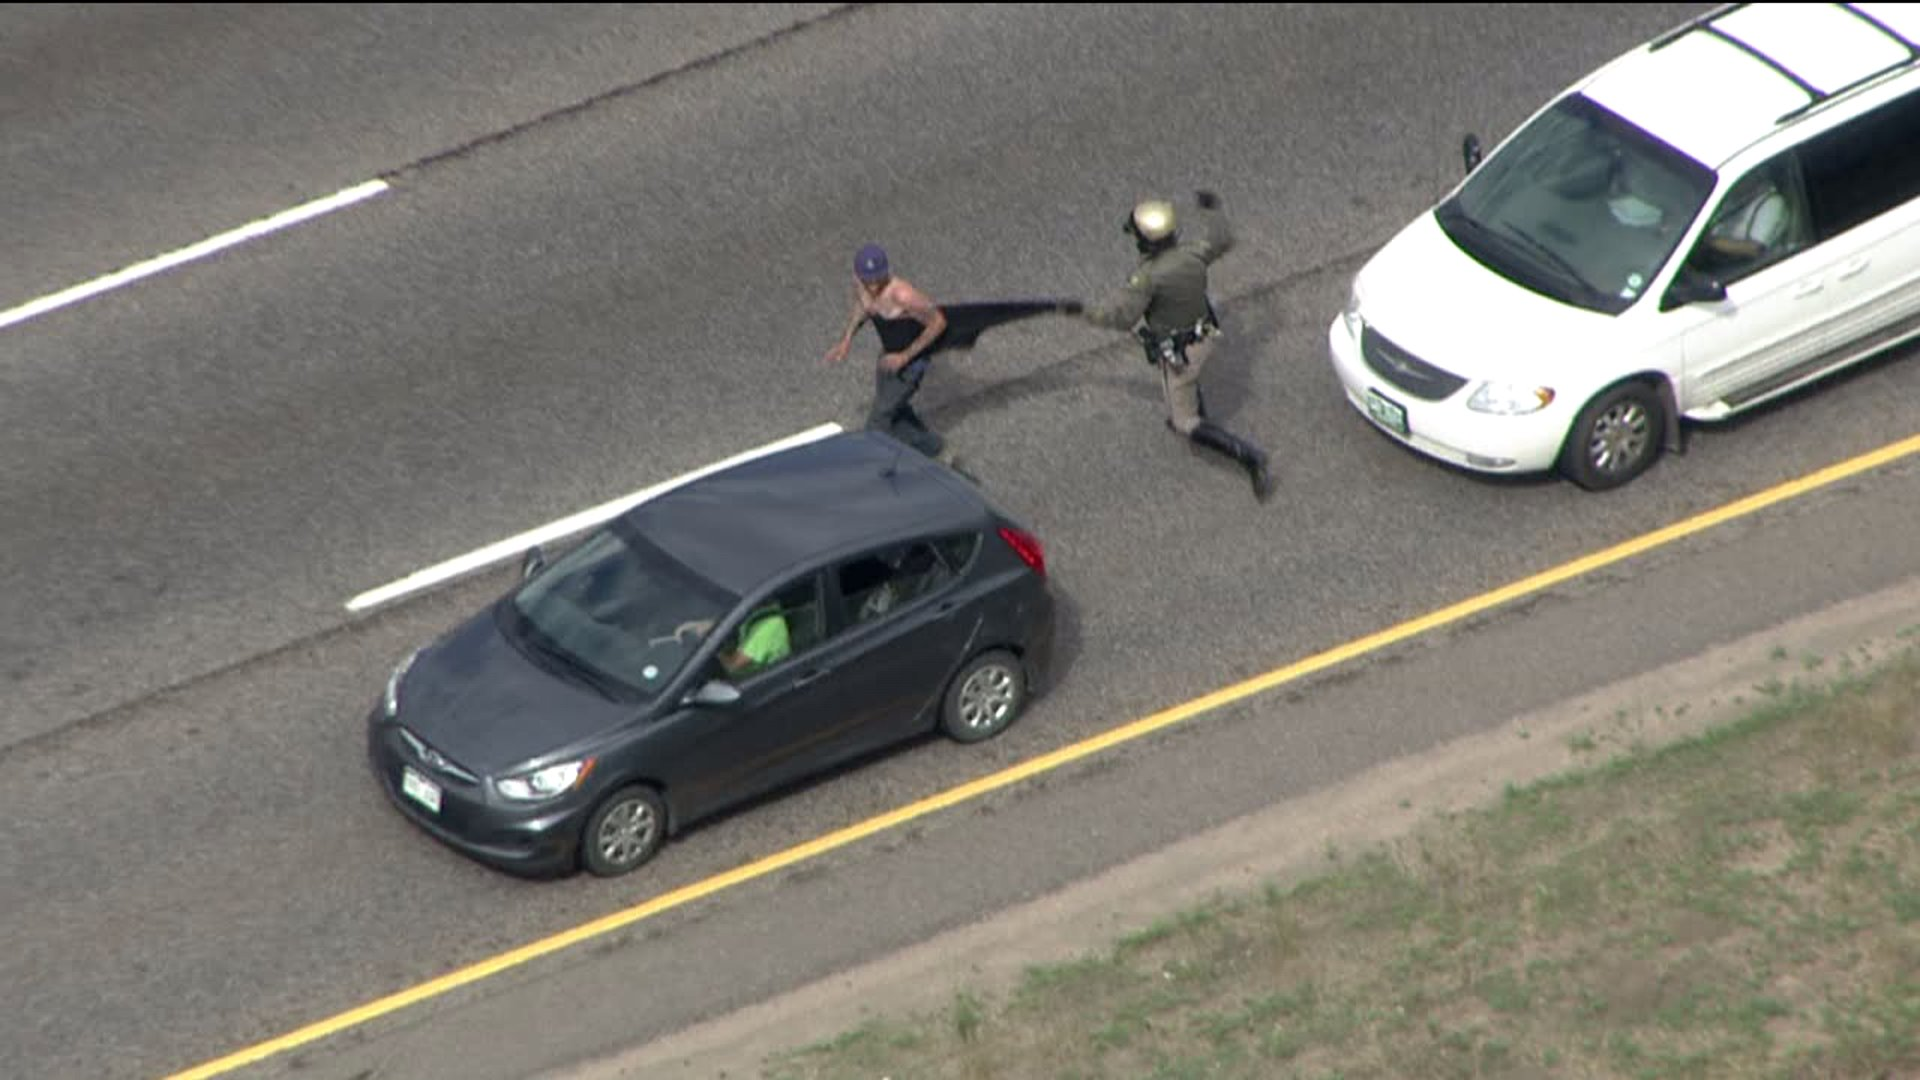 Armed carjack suspect wrestled to the ground by officer on I-70 near Lookout Mountain in Jefferson County, Colo.